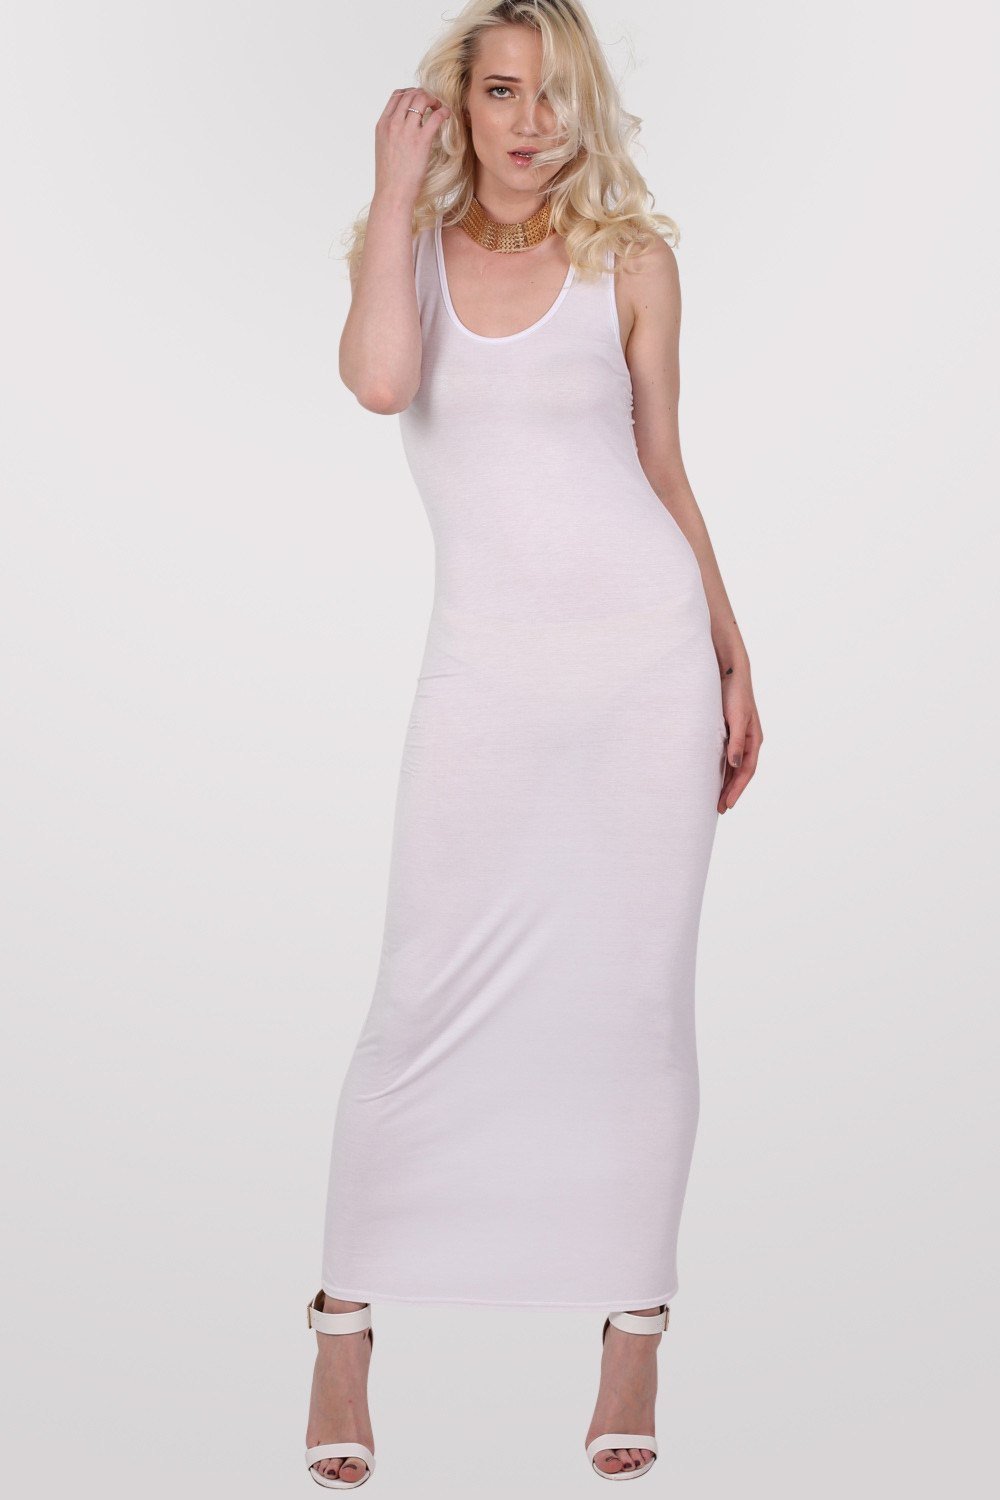 Scoop Neck Sleeveless Maxi Dress in White 0